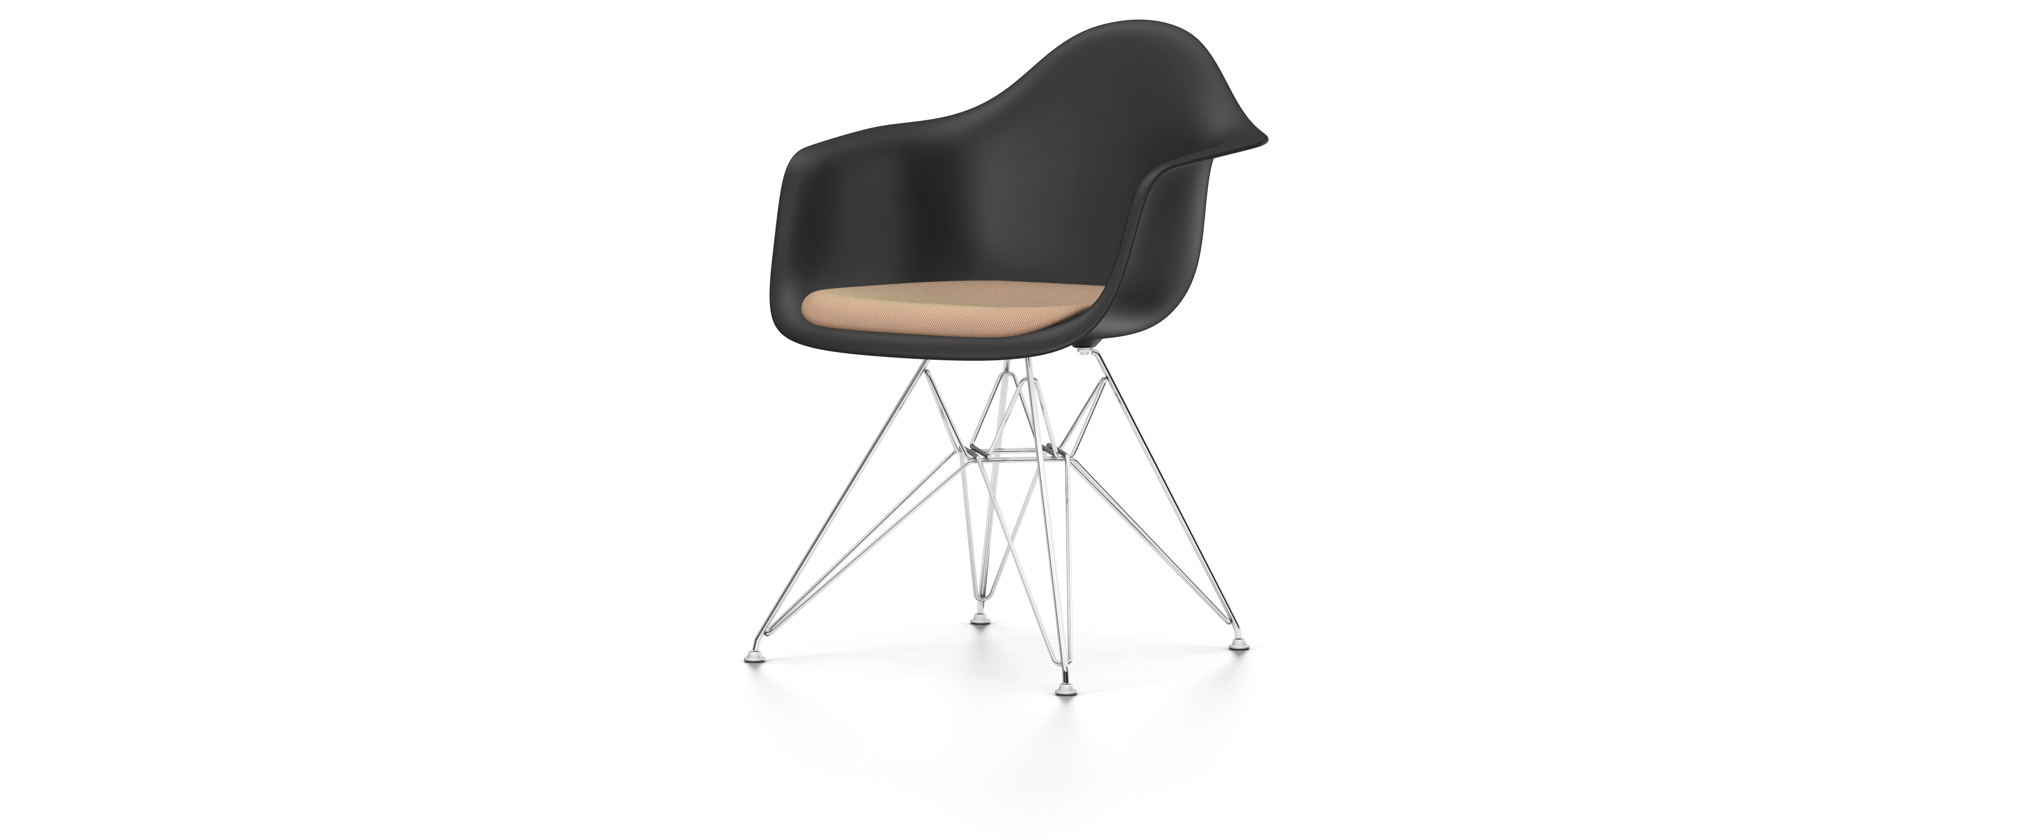 eames dar mit sitzpolster online kaufen original vitrapoint d sseldorf. Black Bedroom Furniture Sets. Home Design Ideas